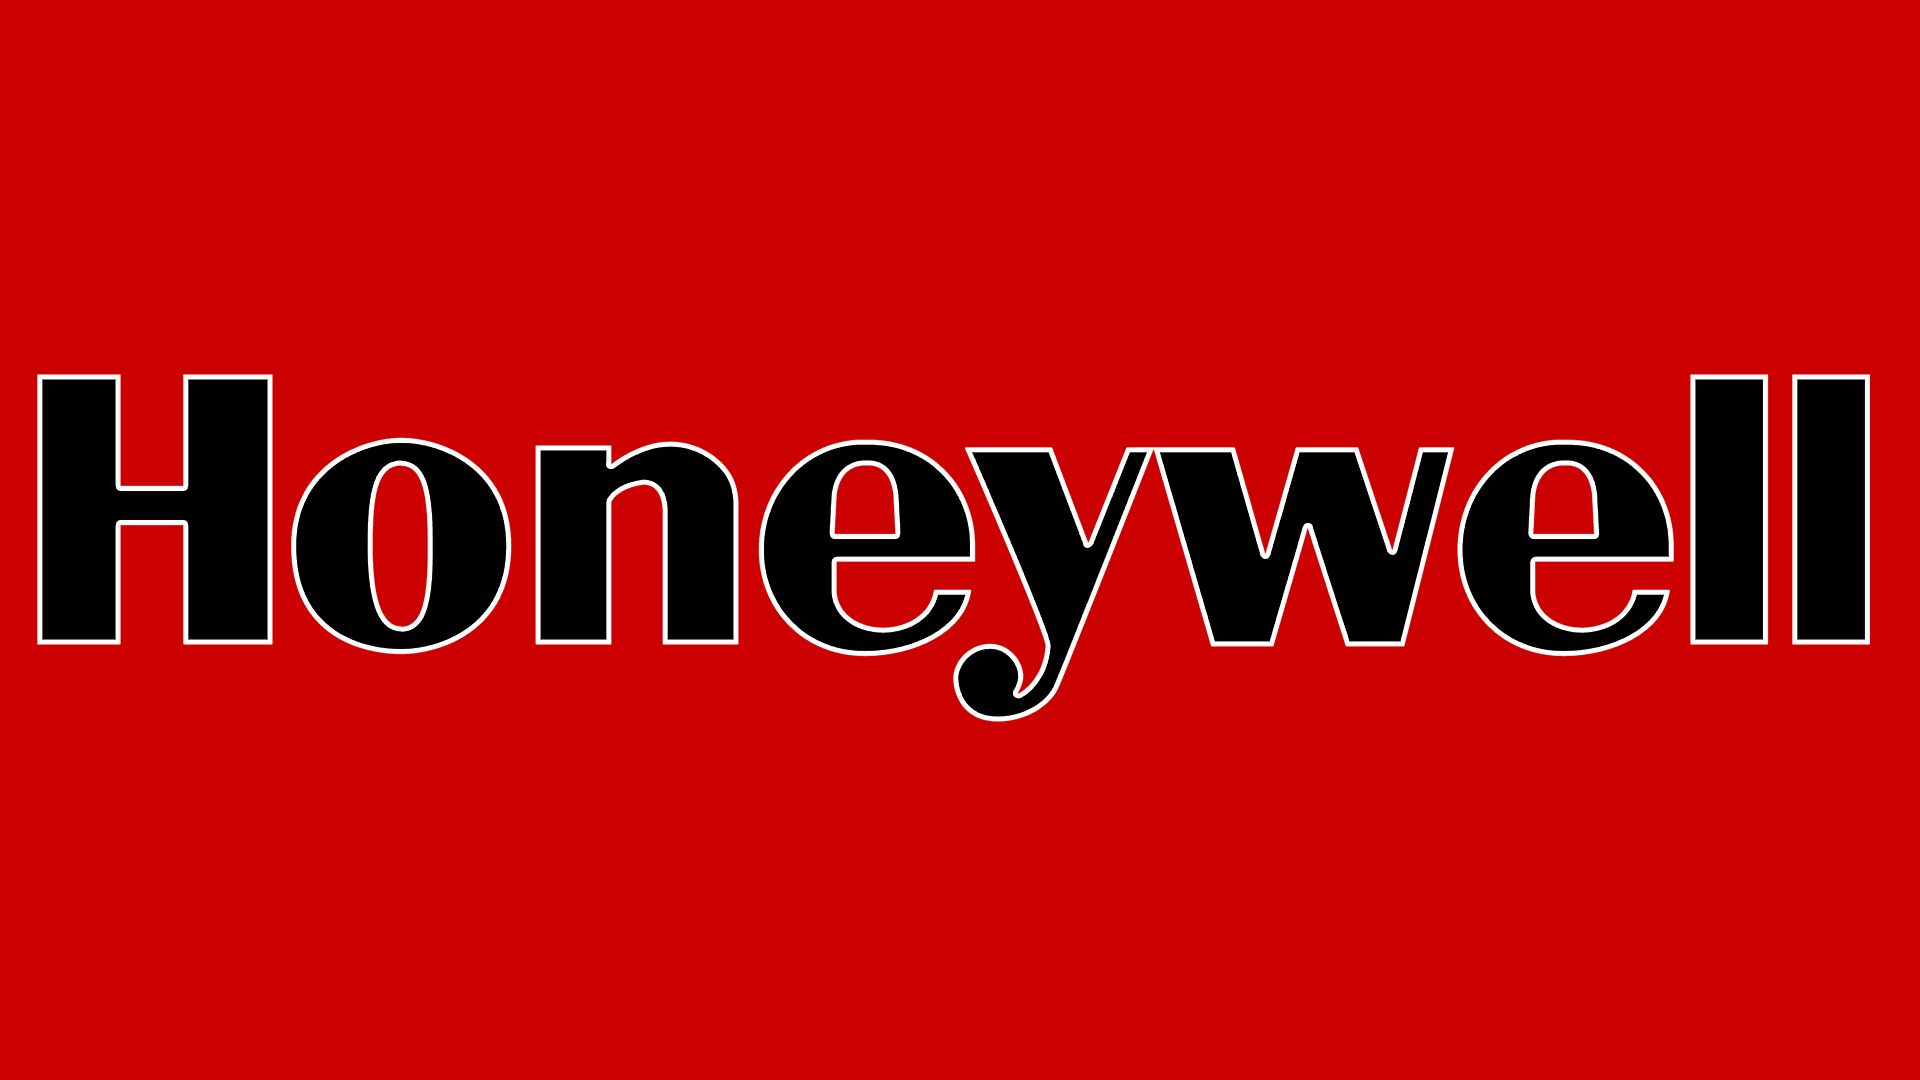 Honeywell Logo - Honeywell Logo, Honeywell Symbol, Meaning, History and Evolution